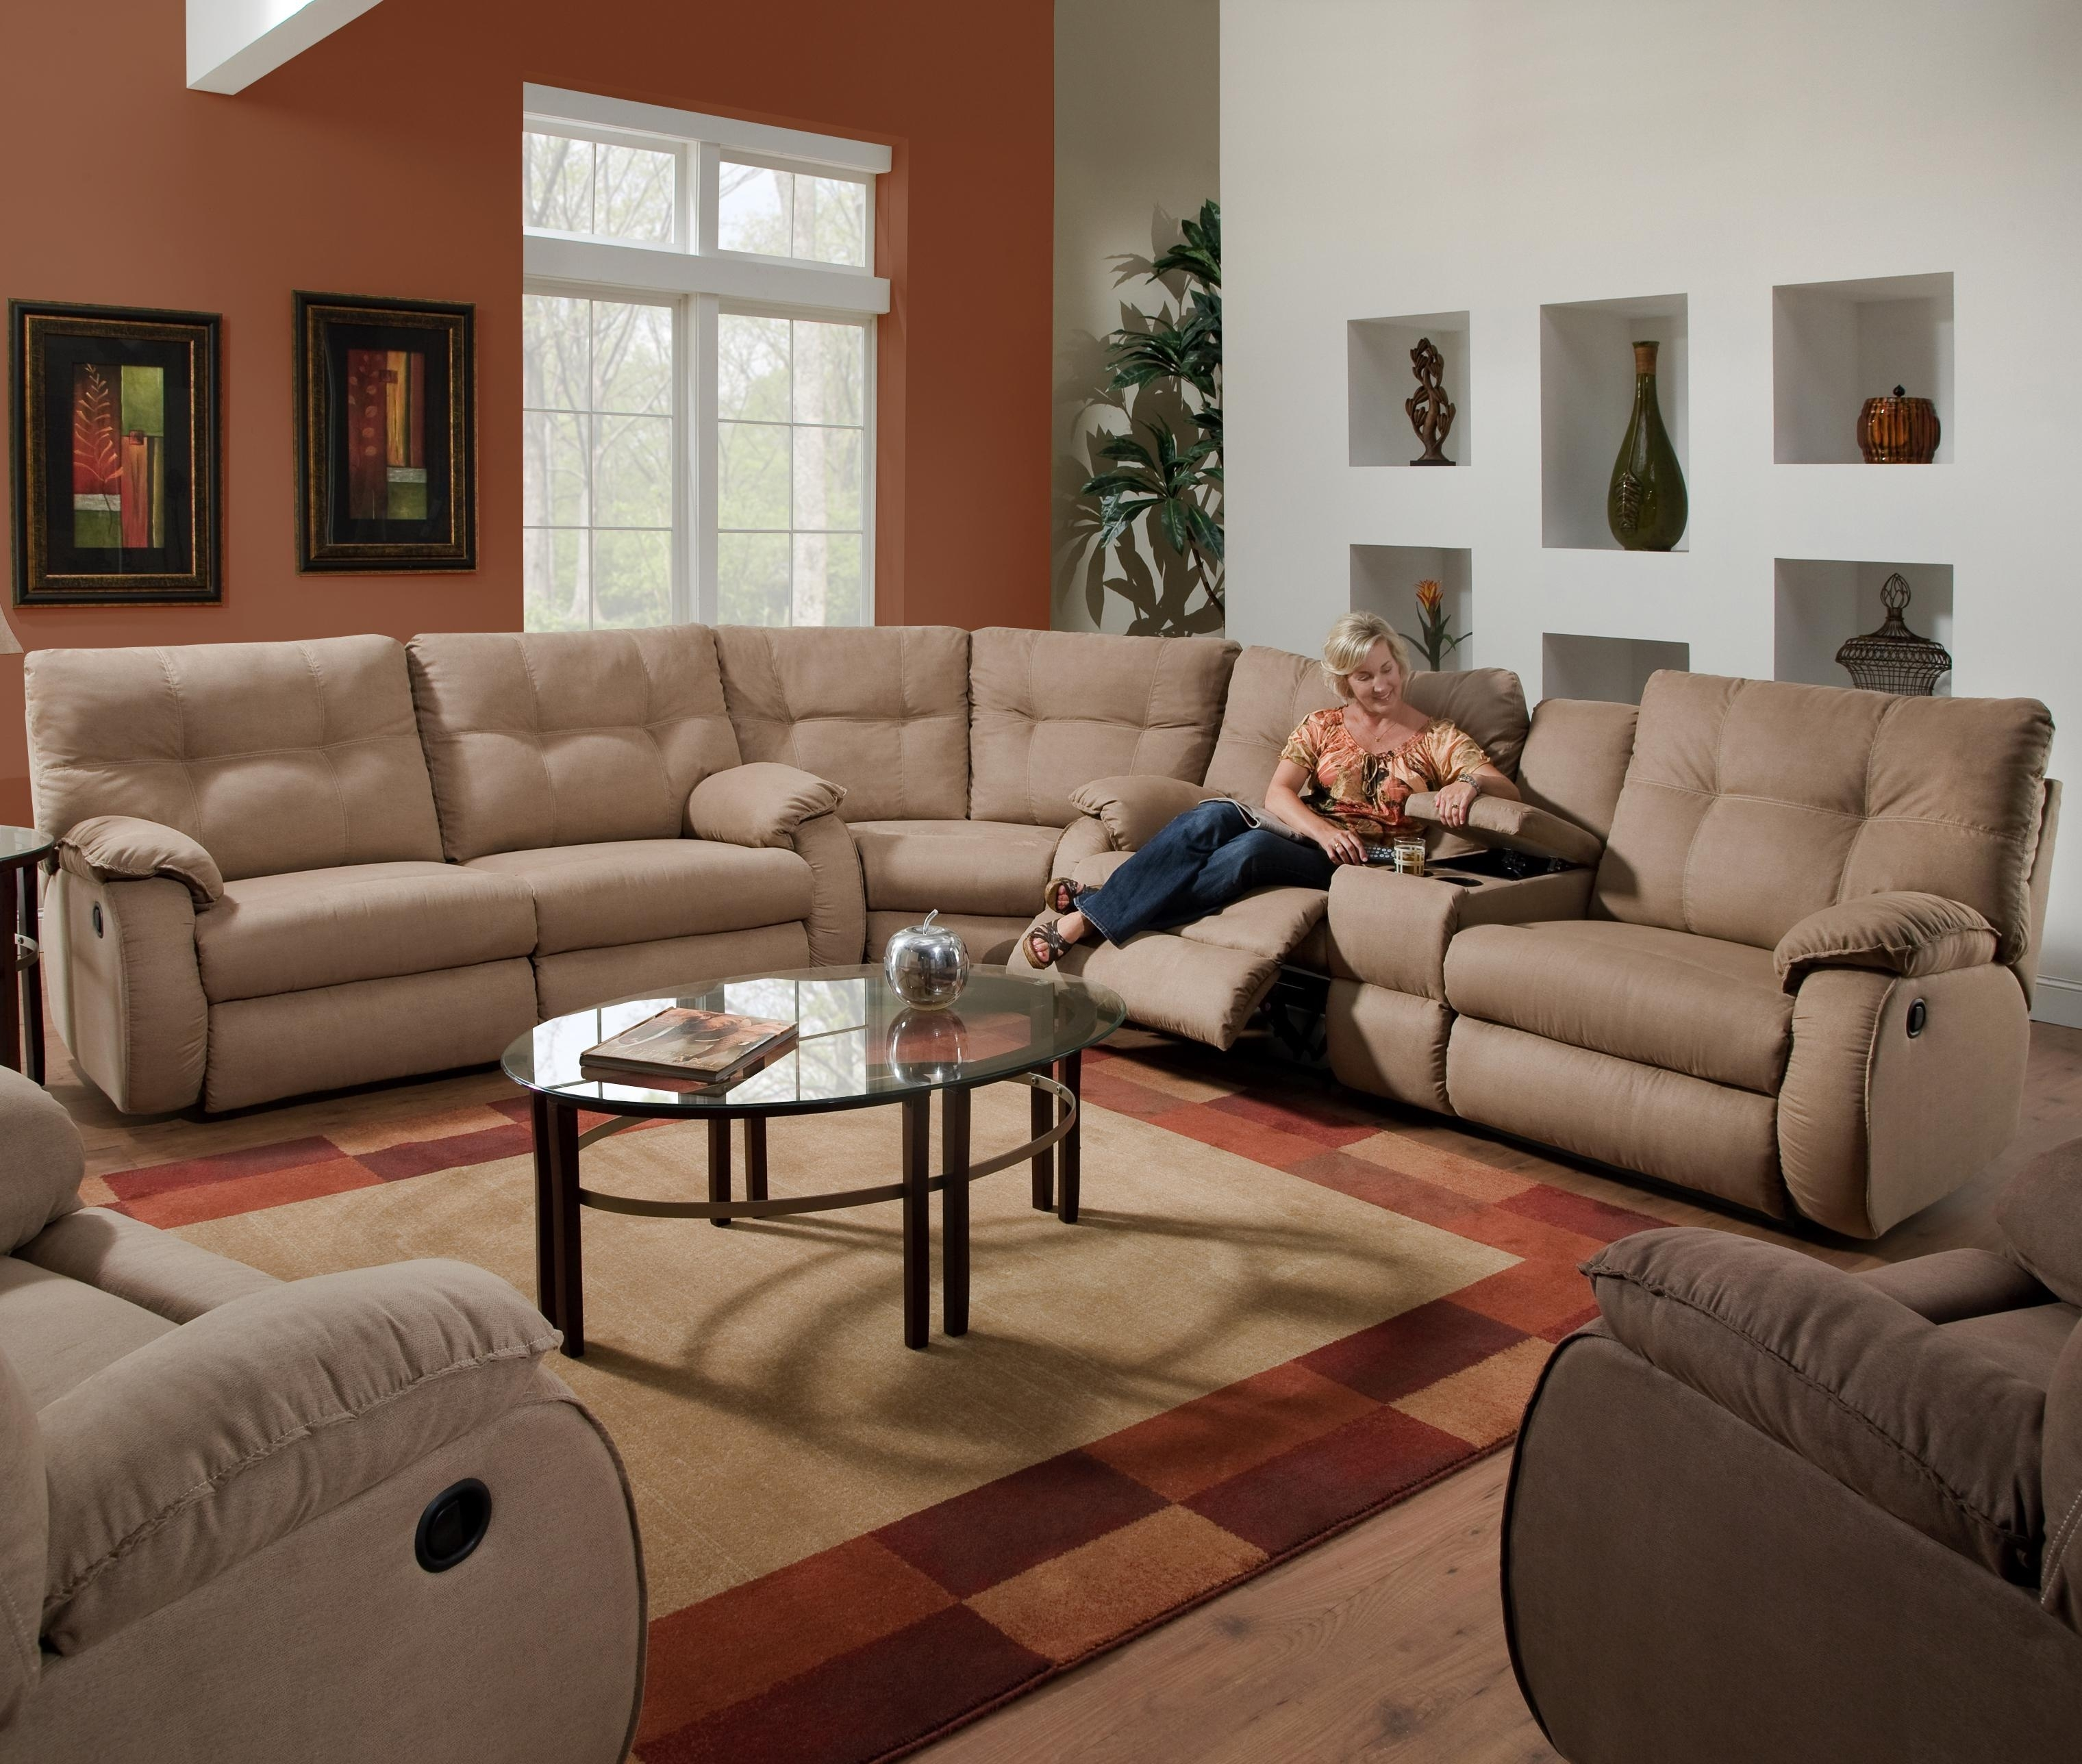 Reclining Sectional Sofas | Aifaresidency regarding Sectional Sofas With Consoles (Image 7 of 10)